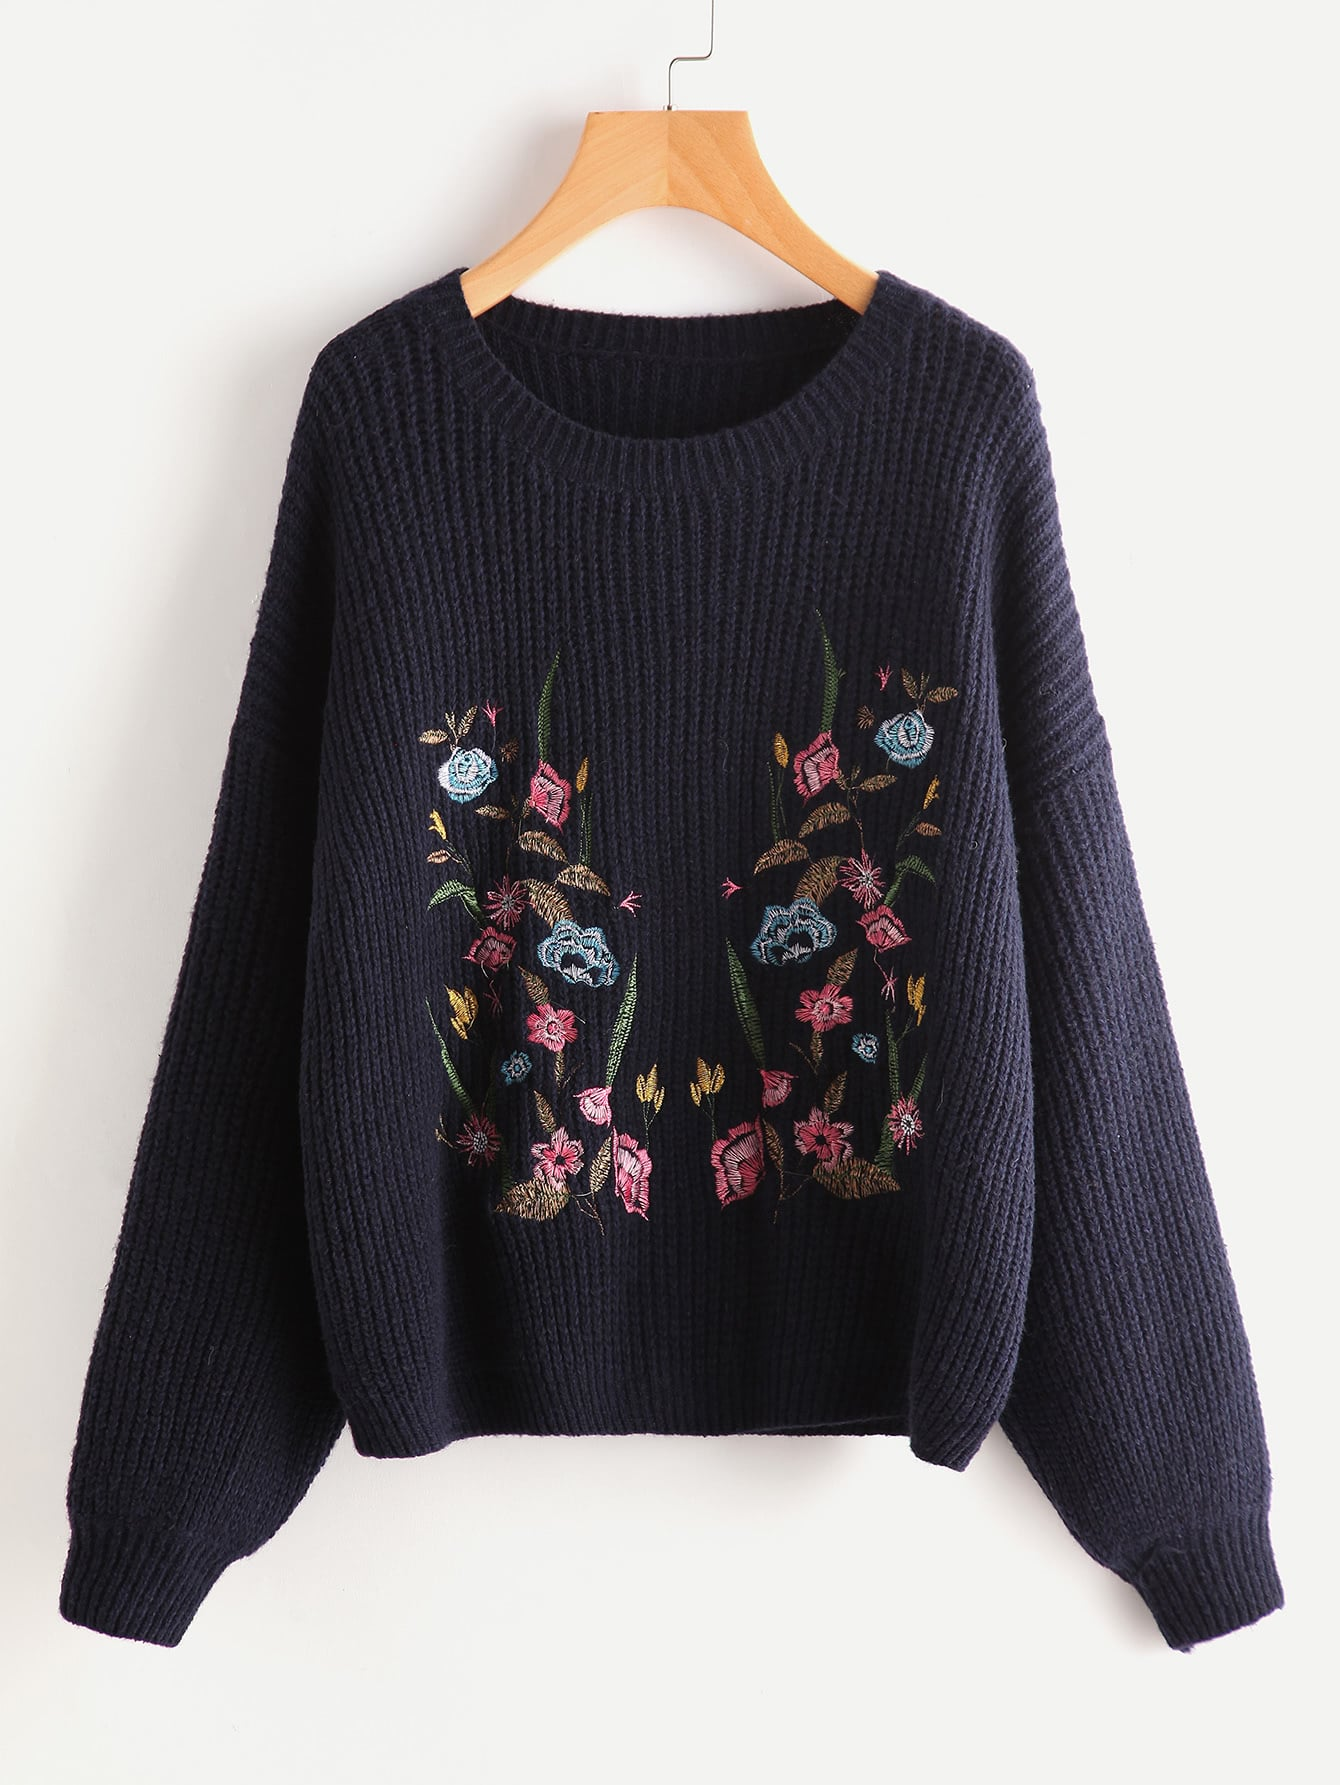 Botanical Embroidered Drop Shoulder Jumper arrivals 1 36kg